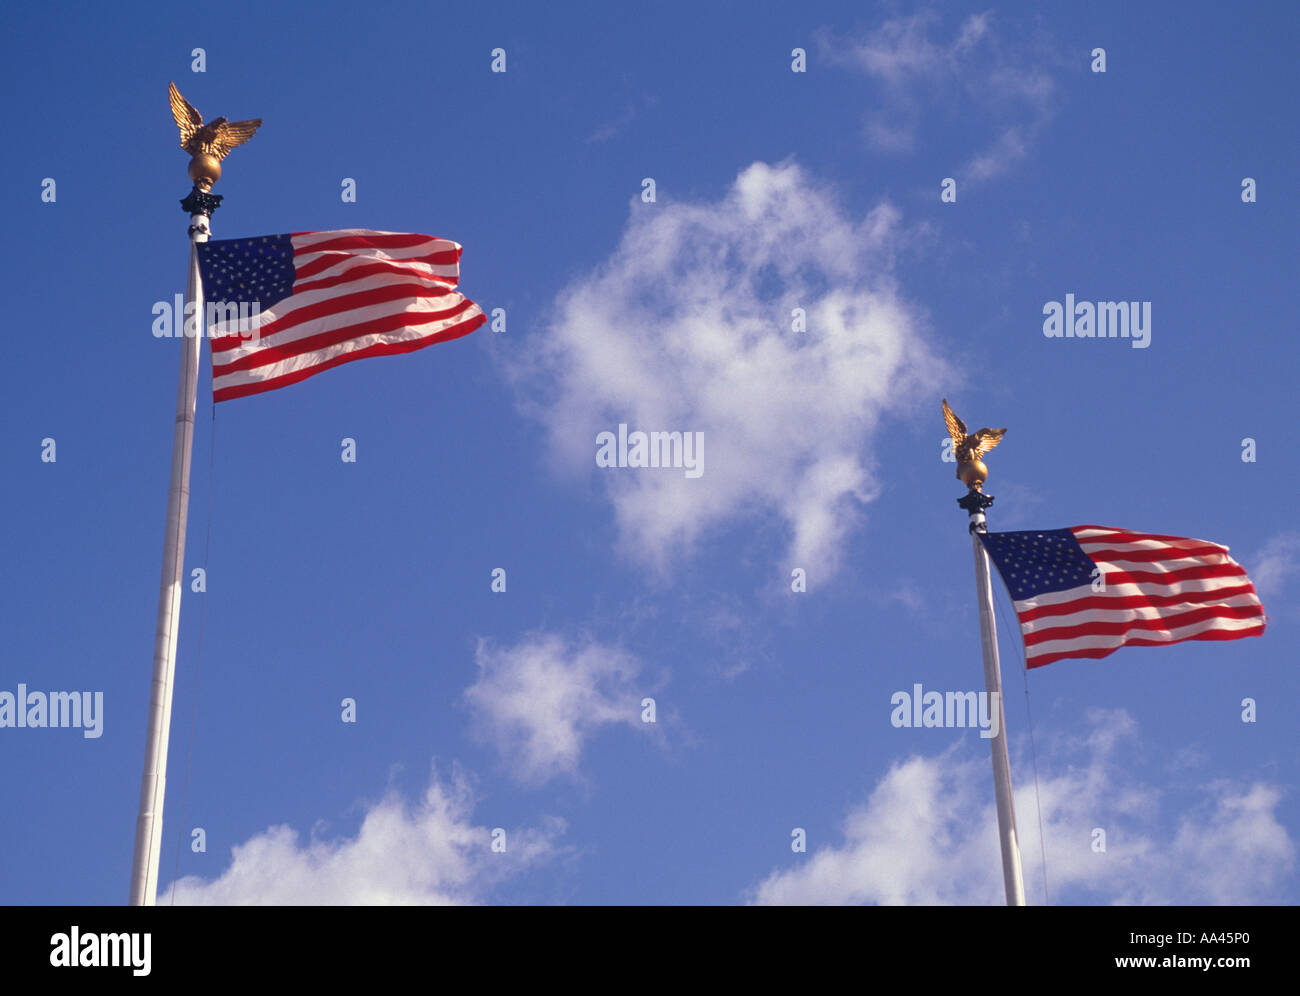 USA Two American Flags - Stock Image